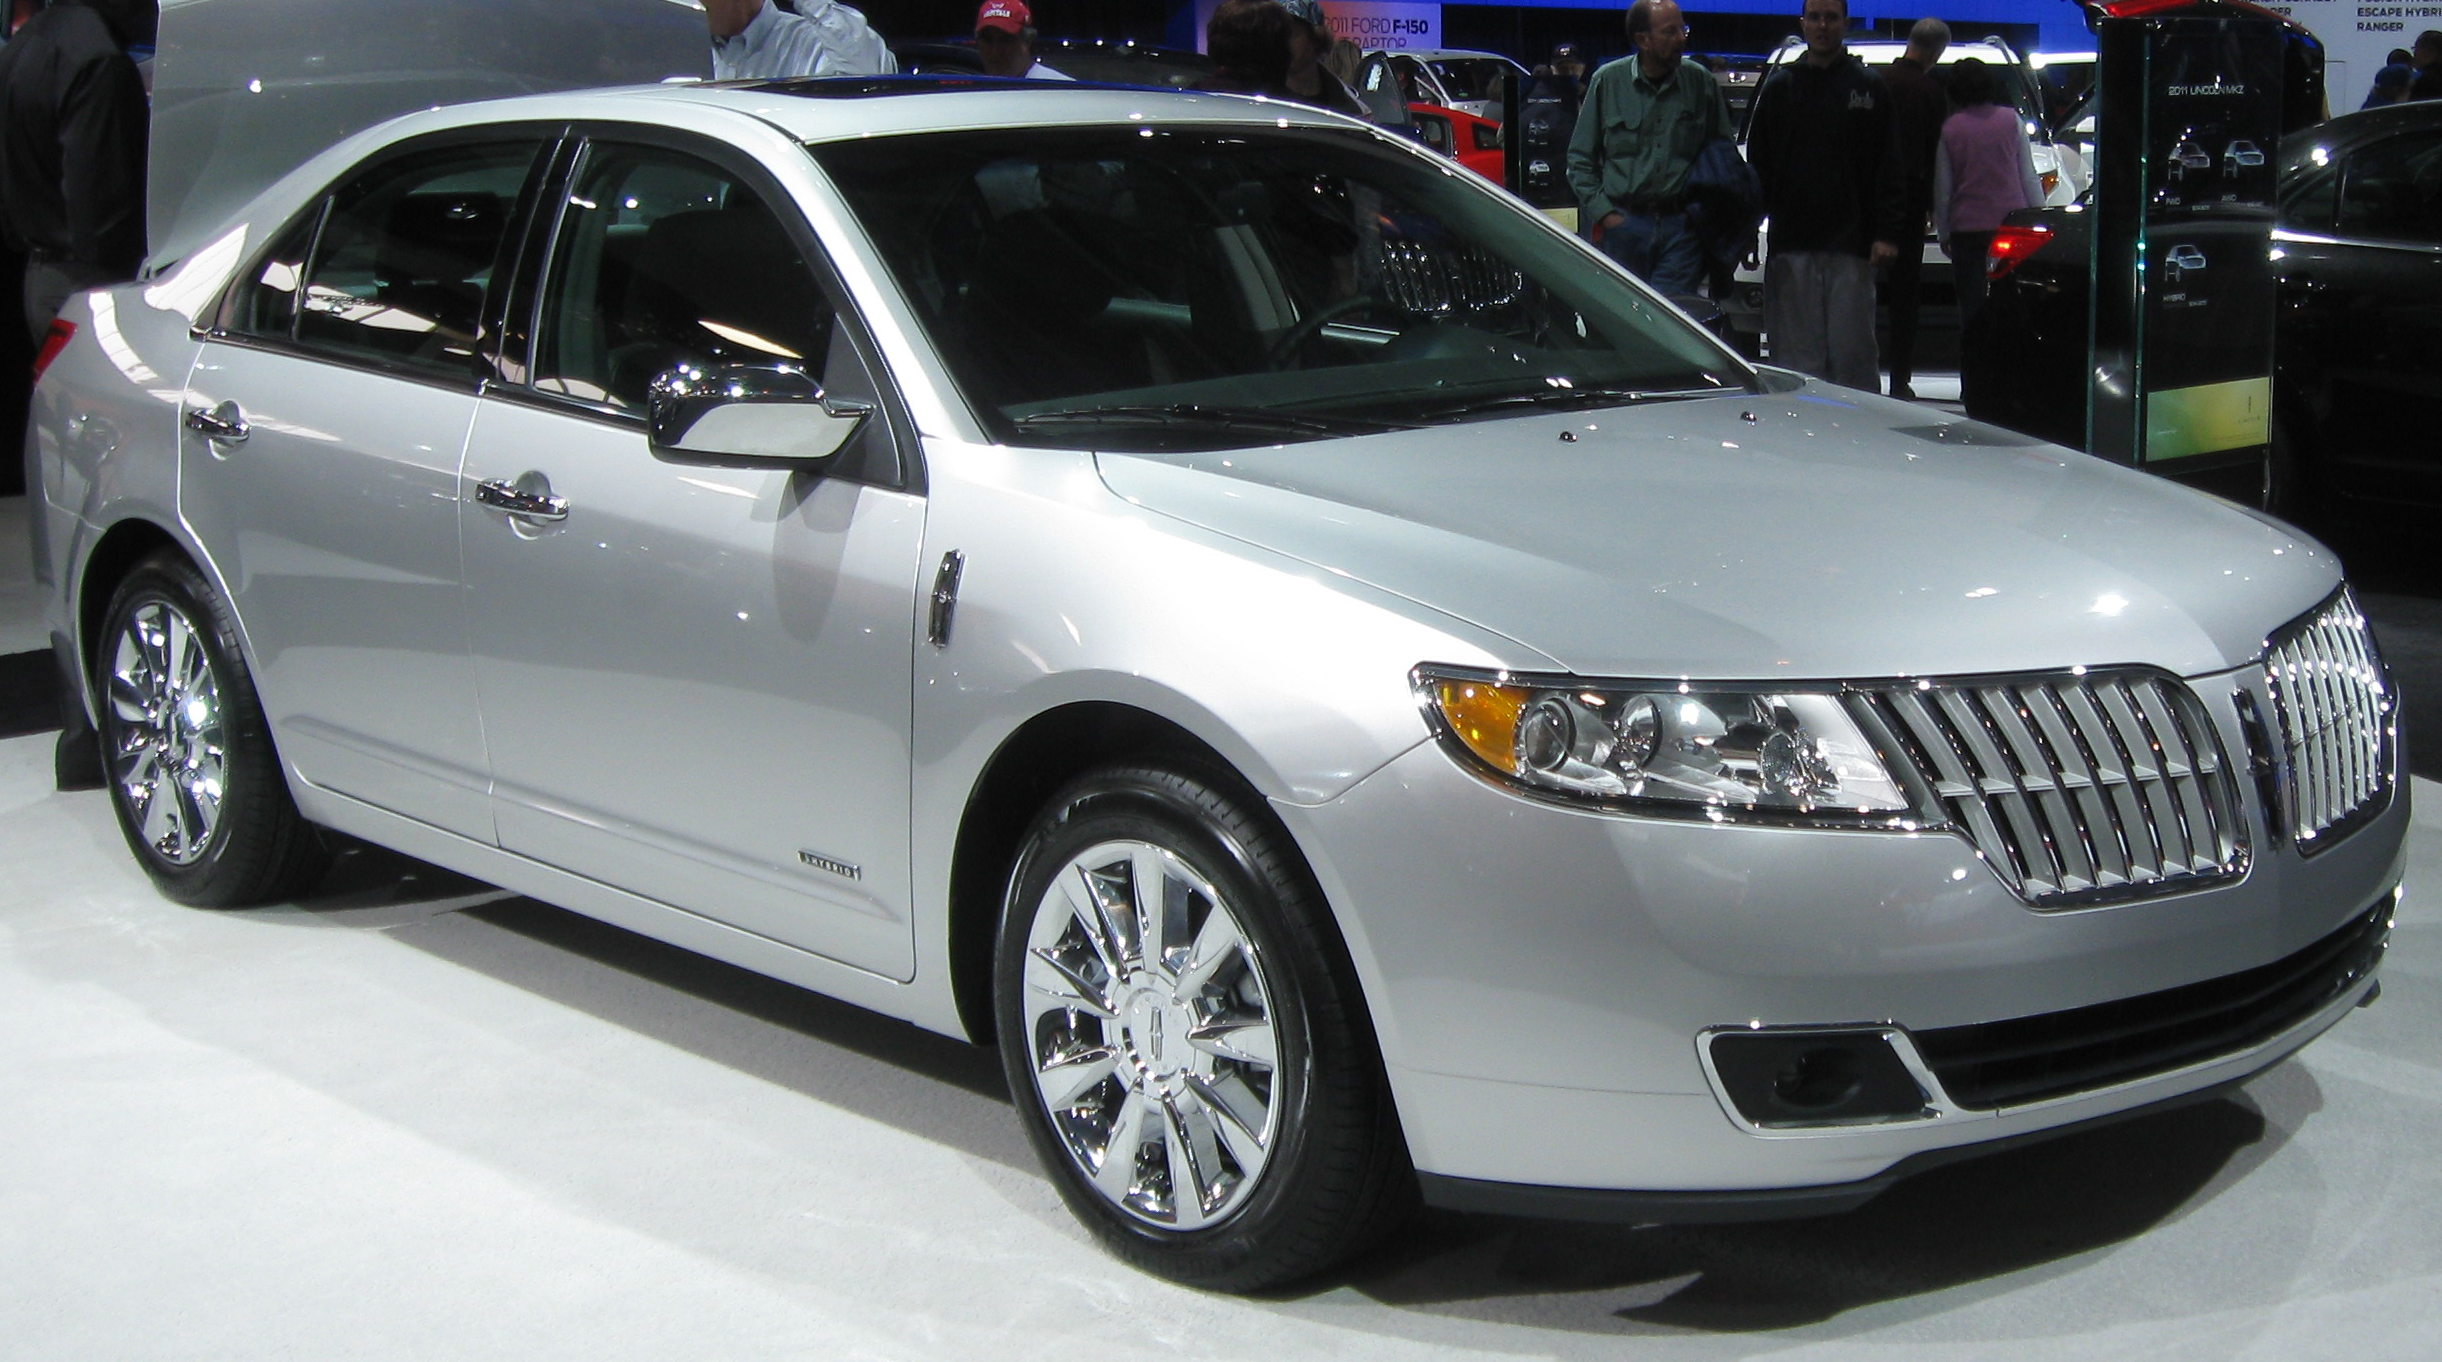 File:2011 Lincoln MKZ Hybrid -- 2011 DC.jpg - Wikimedia Commons